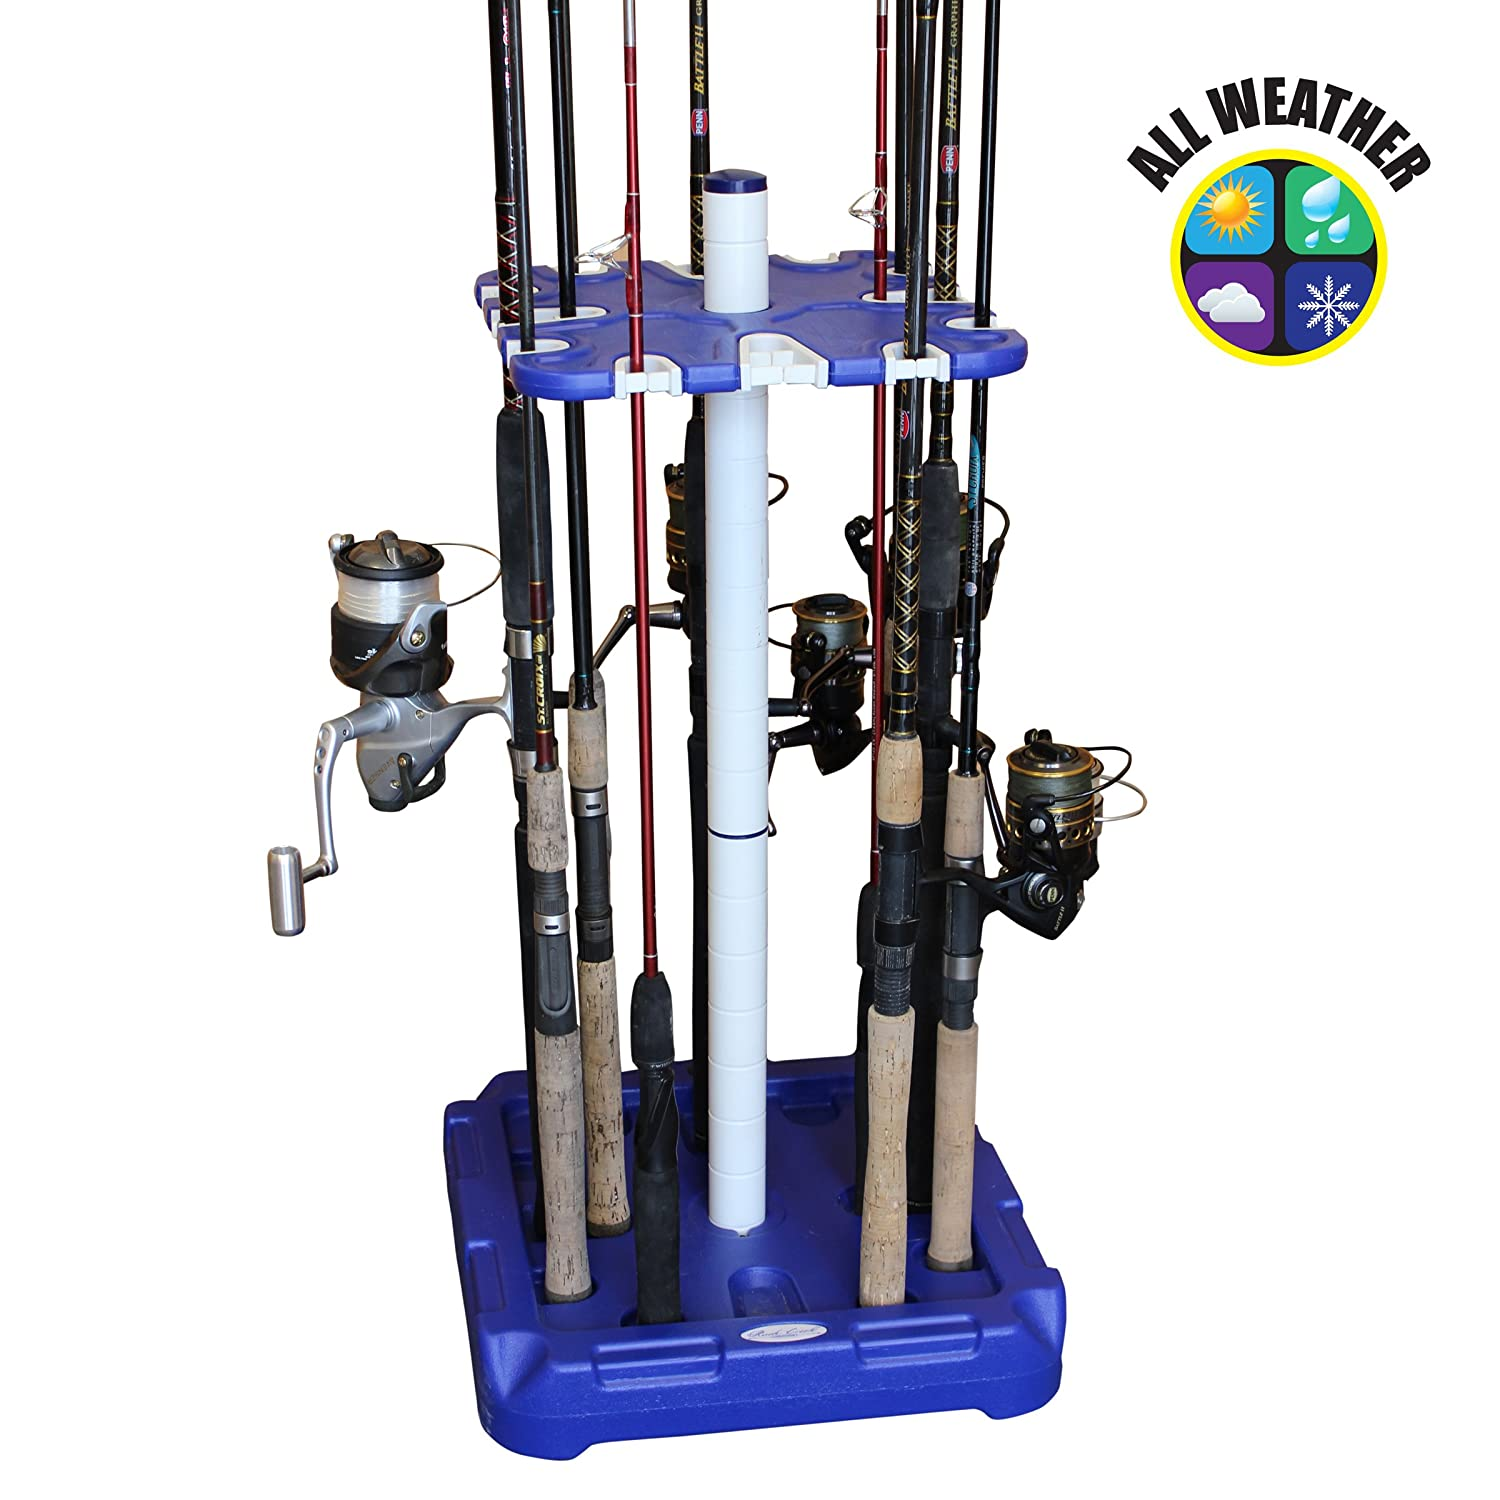 Rush Creek Creations All-Weather 16 Rod Storage Rack – 3 Minute Assembly – Featured in 2018 Fishing Tackle Retailer Magazine Innovative Rod Storage